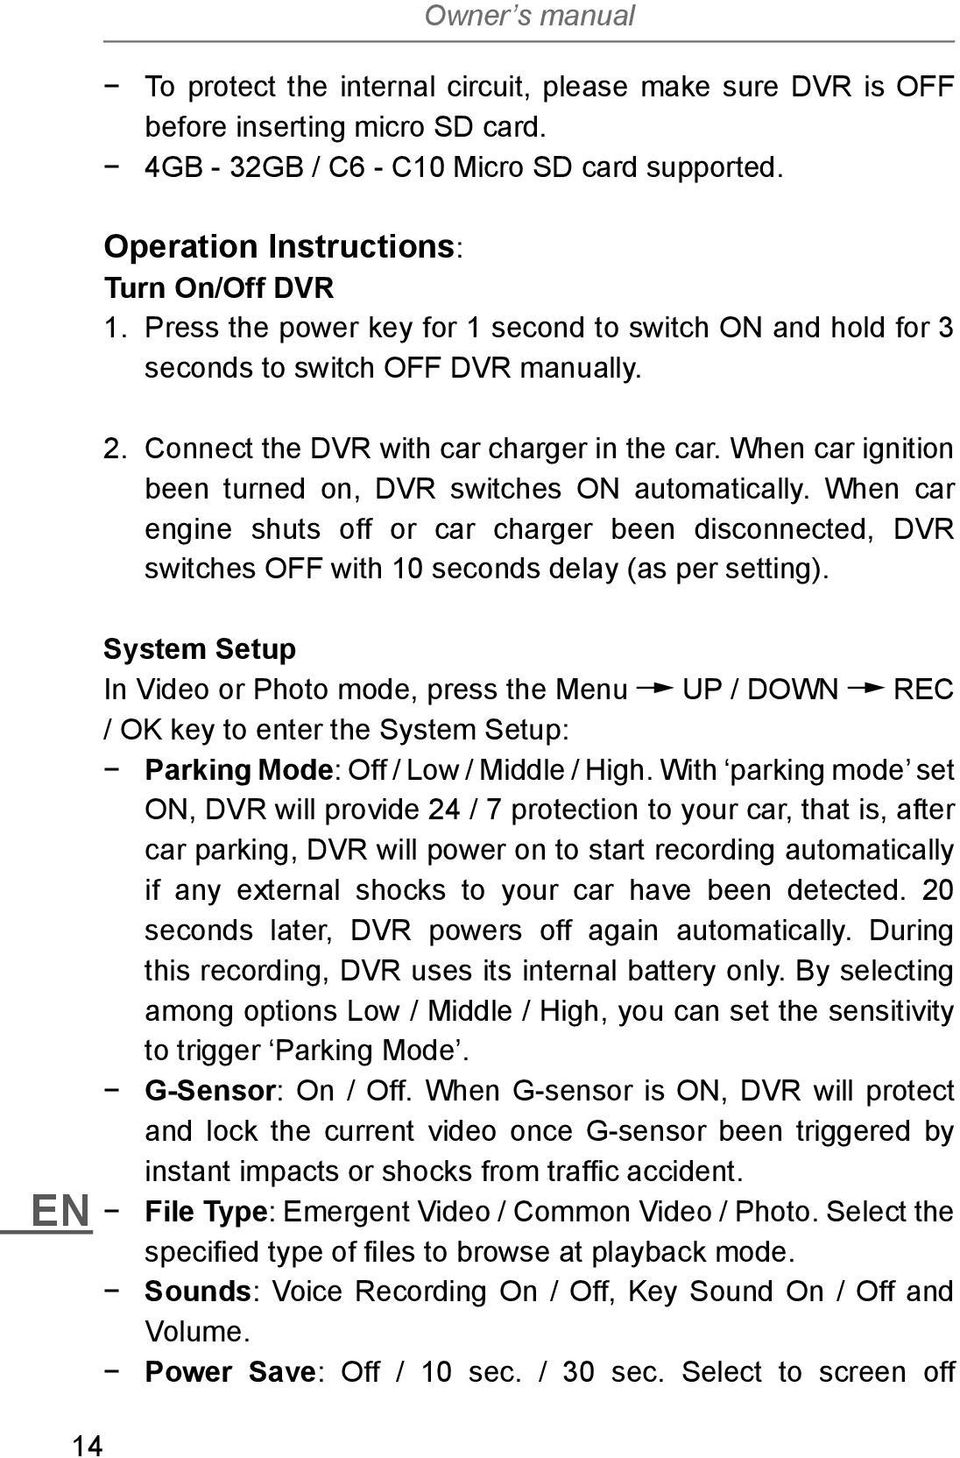 When car ignition been turned on, DVR switches ON automatically. When car engine shuts off or car charger been disconnected, DVR switches OFF with 10 seconds delay (as per setting).